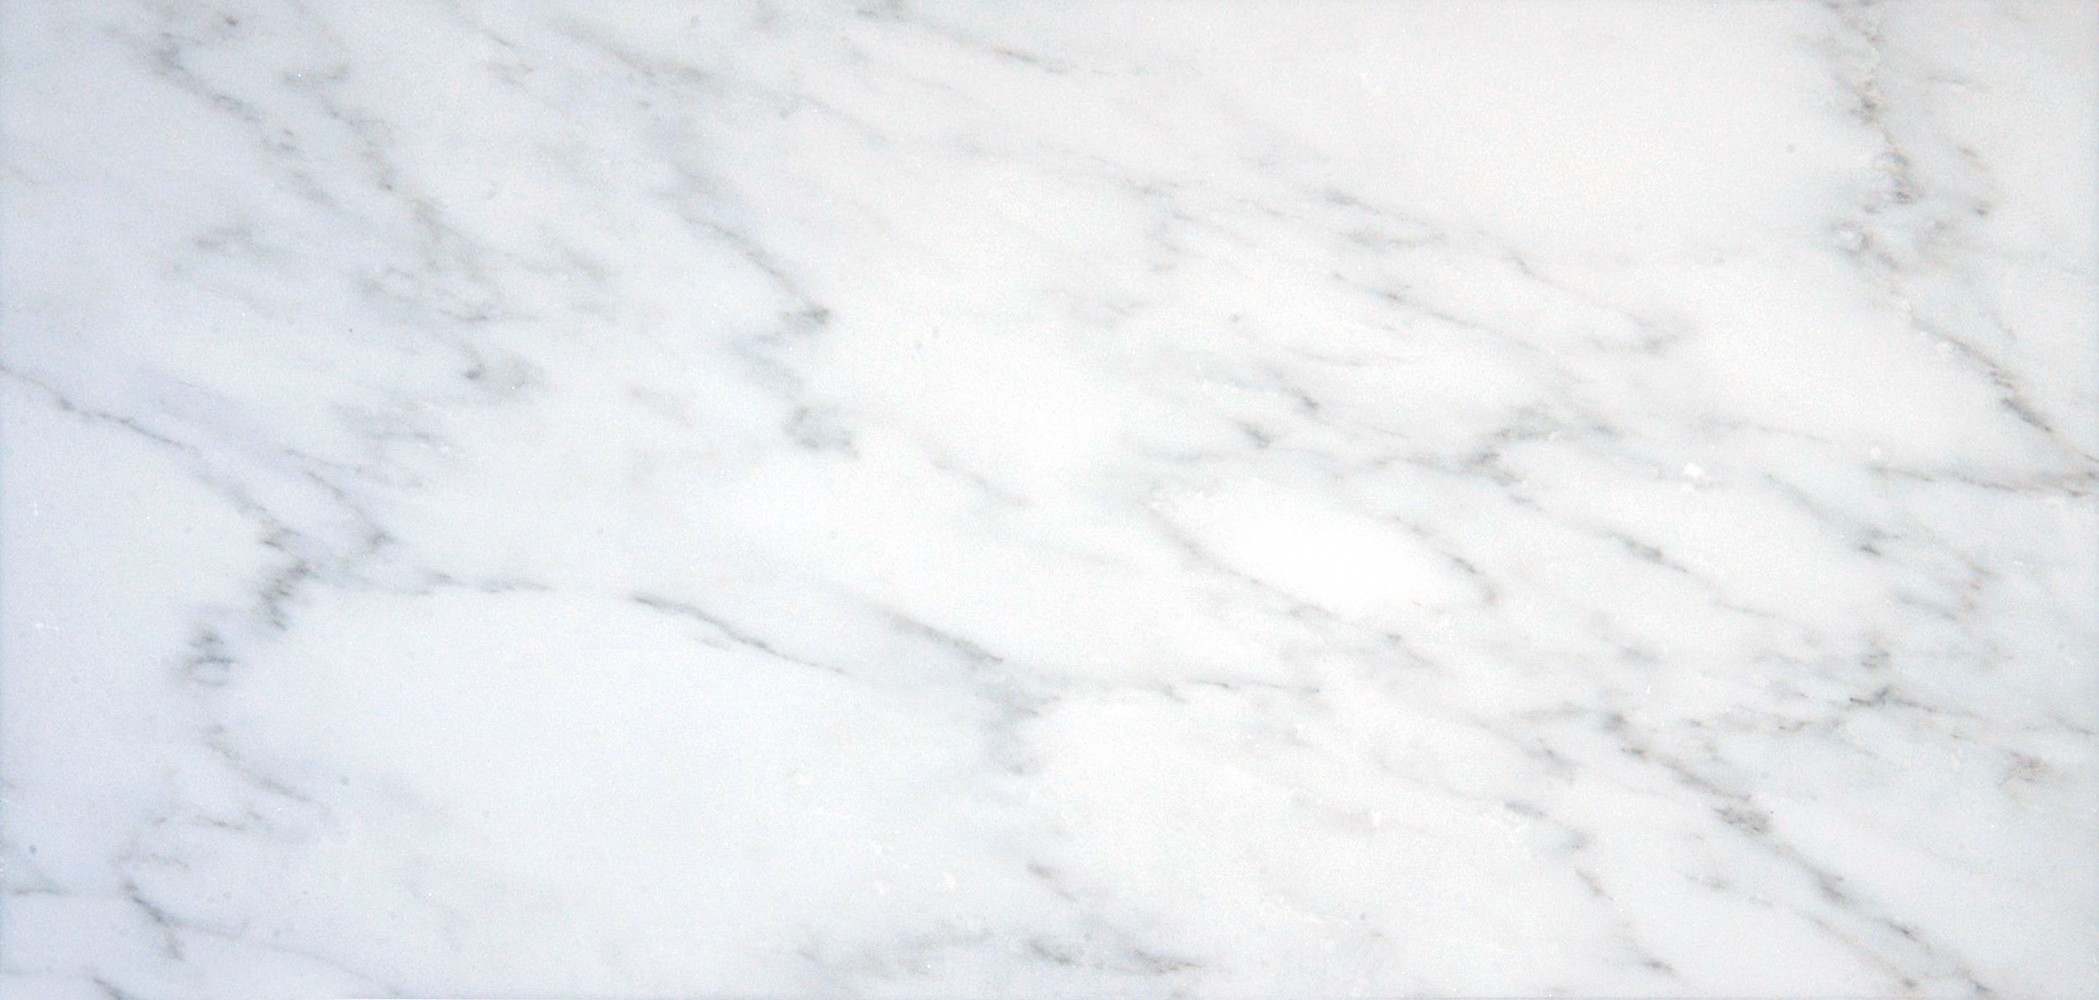 Arabescato Carrara Marble : Buy arabescato carrara marble wallandtile